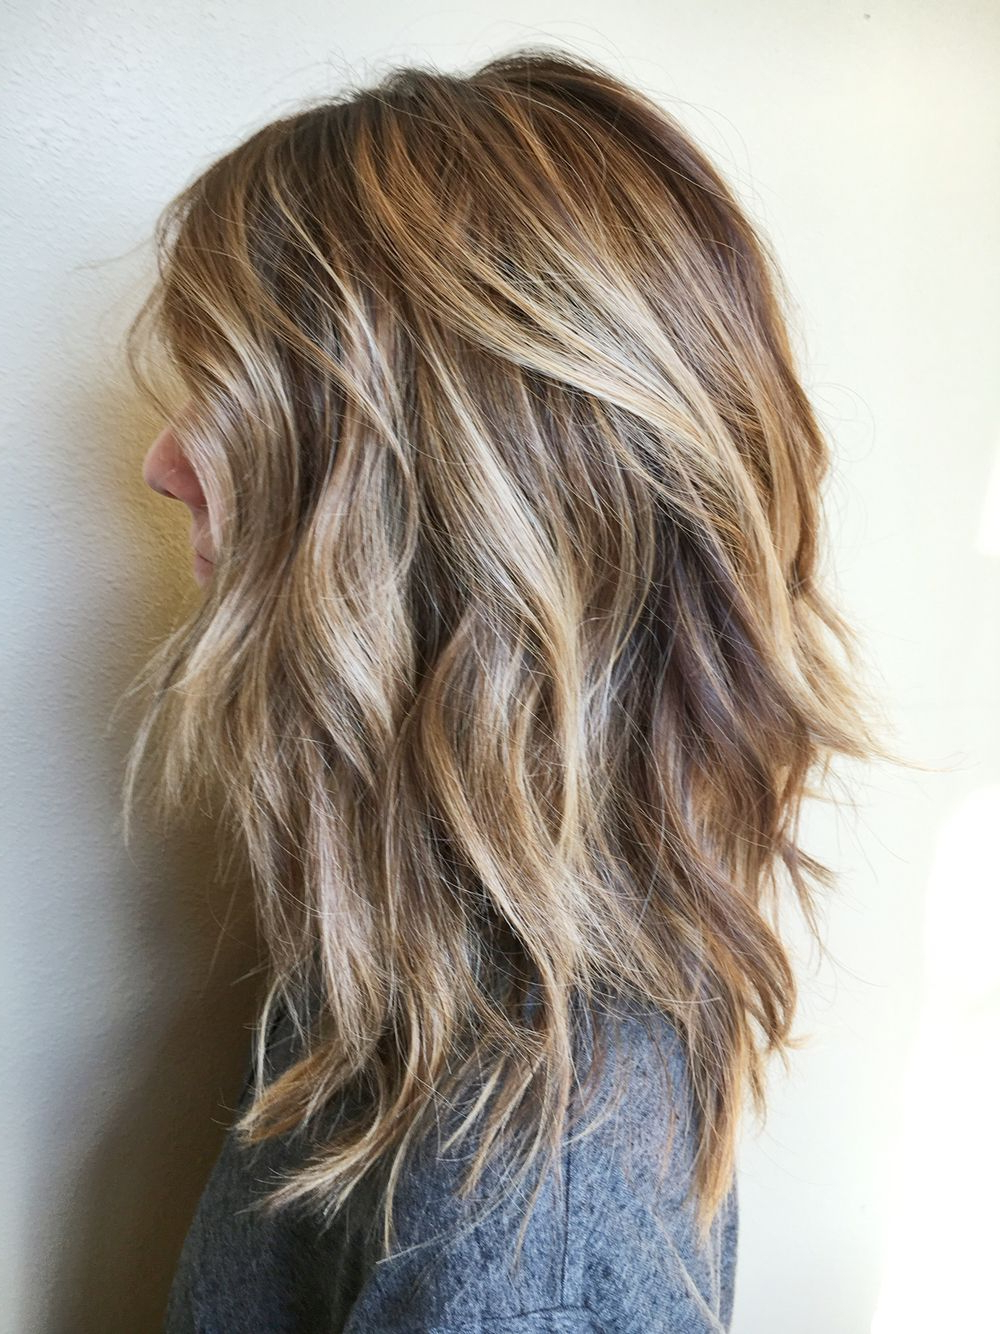 40 Amazing Medium Length Hairstyles & Shoulder Length Haircuts Throughout Well Known Medium Haircuts With Lots Of Layers (View 5 of 20)